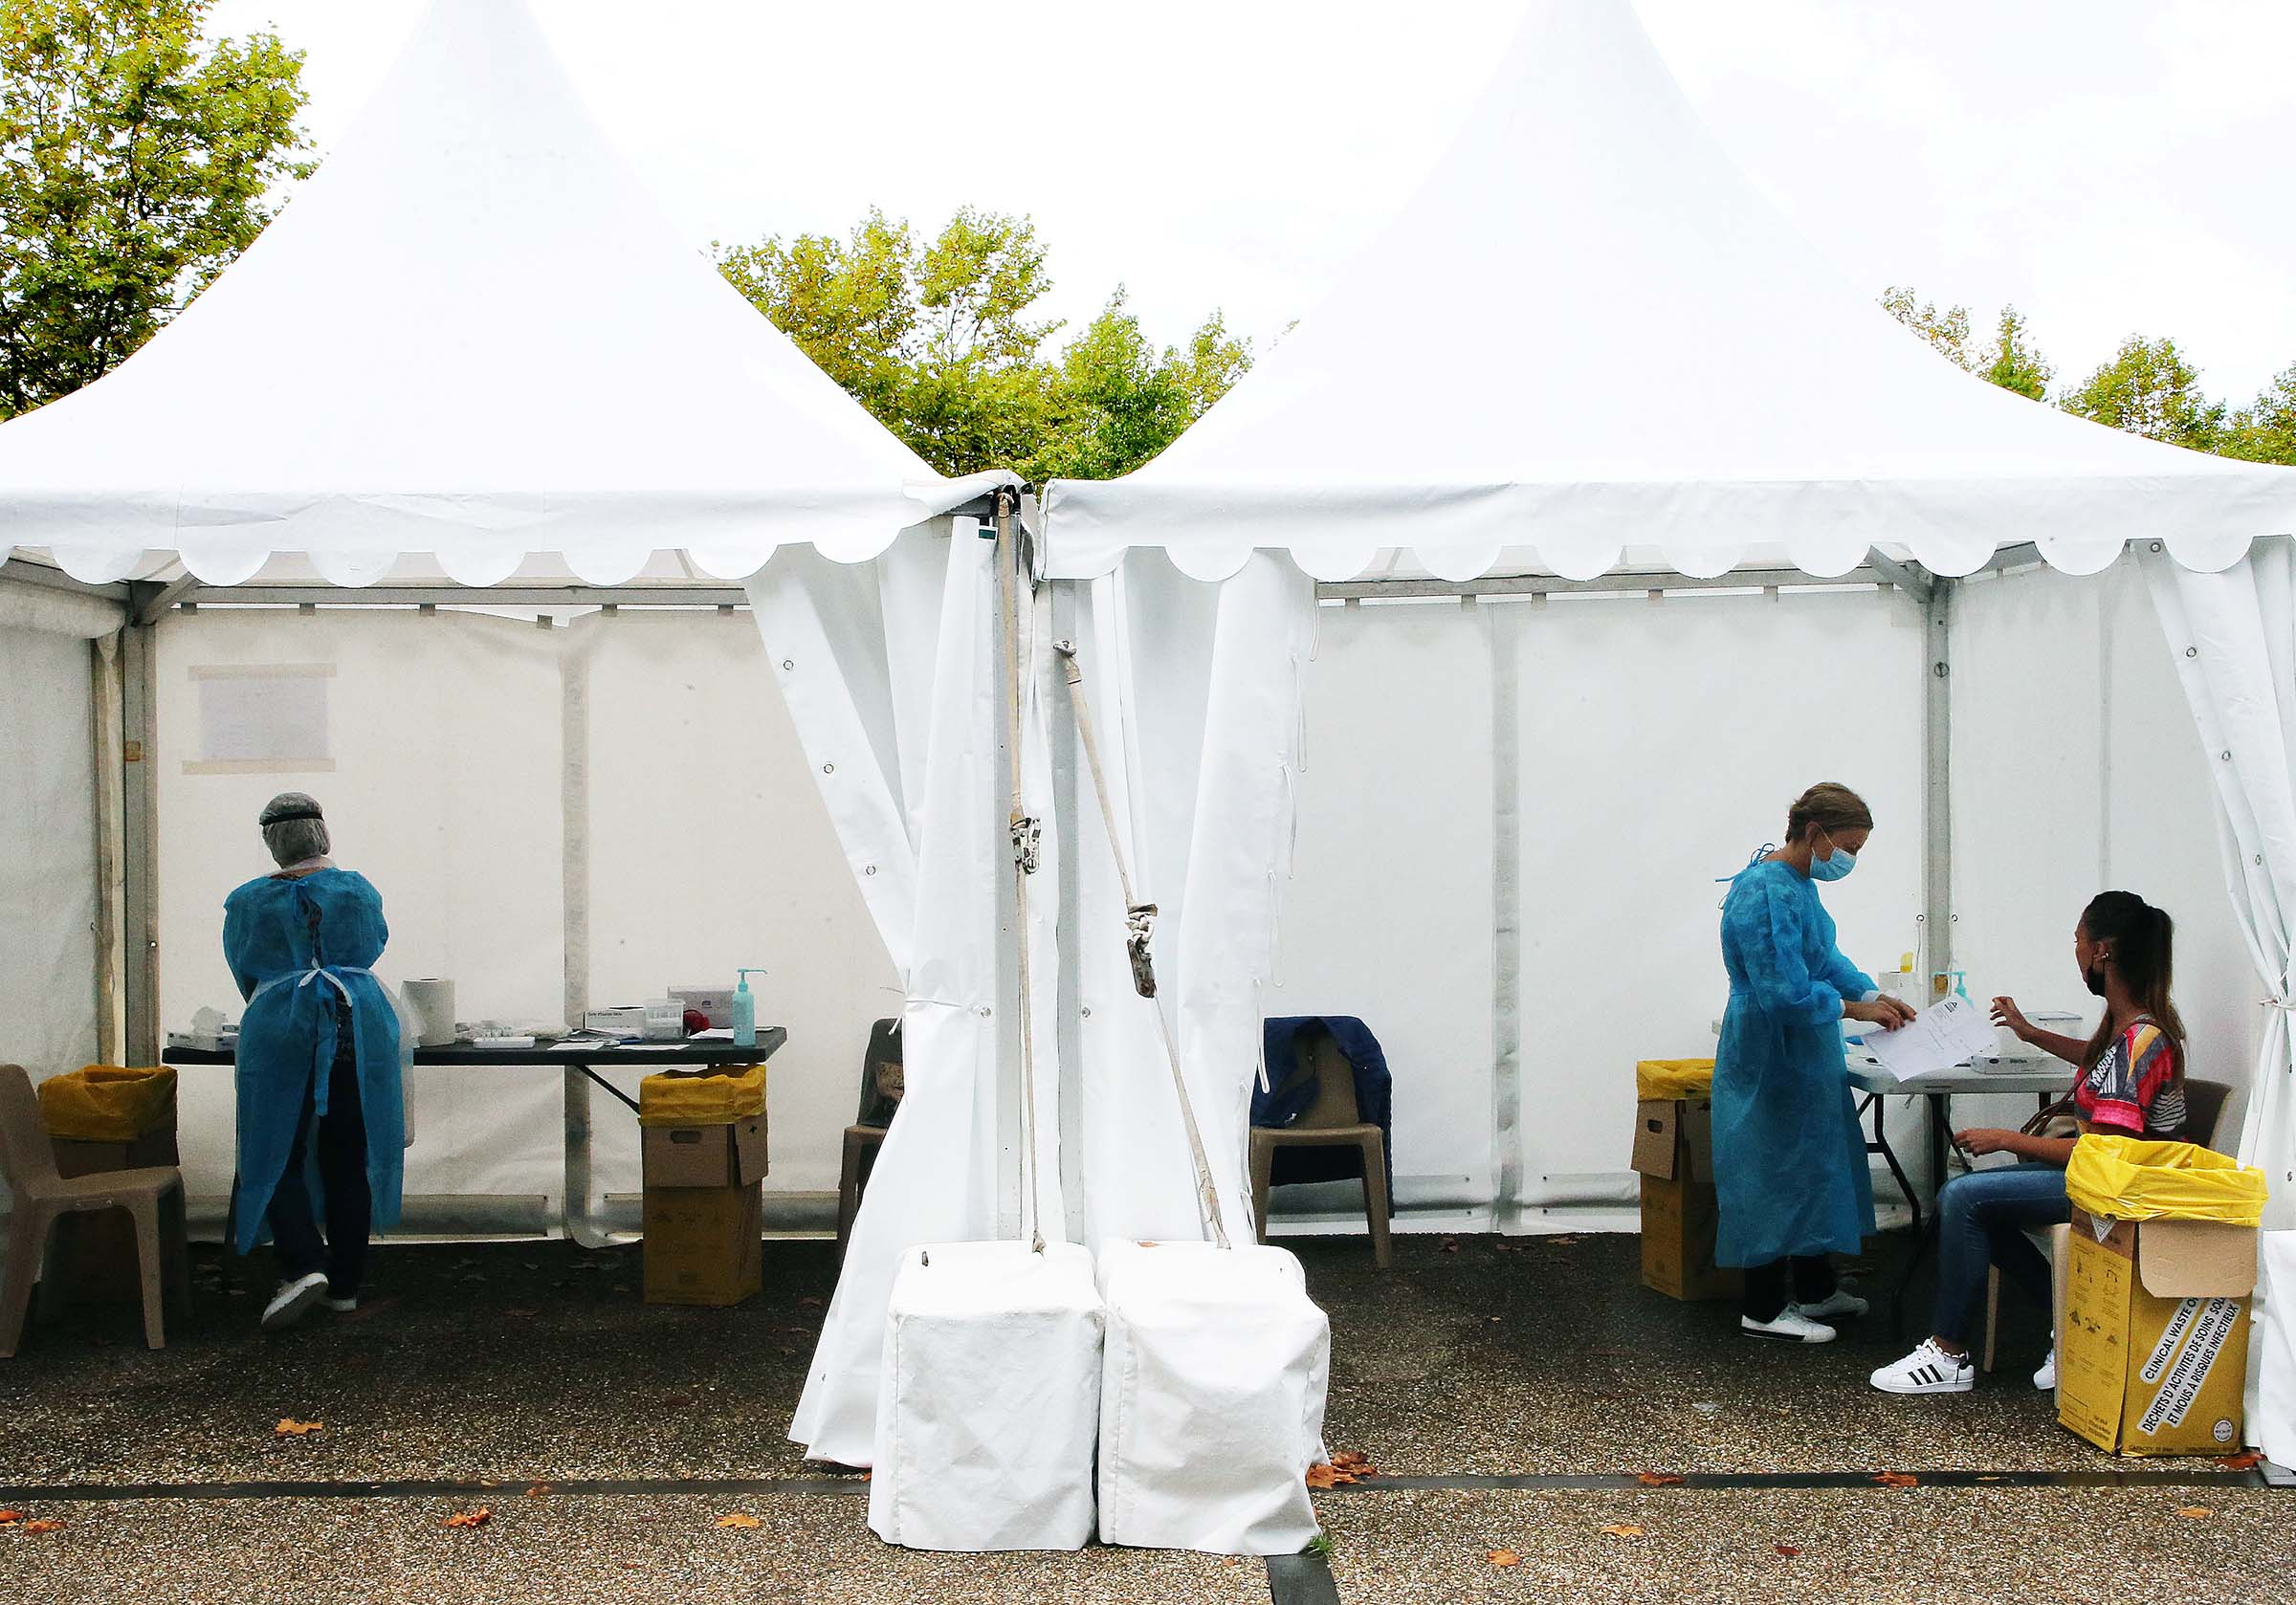 Technicians prepare to collect nasal swab samples for at a COVID-19 testing centre in Bayonne, France, on Sept. 22, 2020.